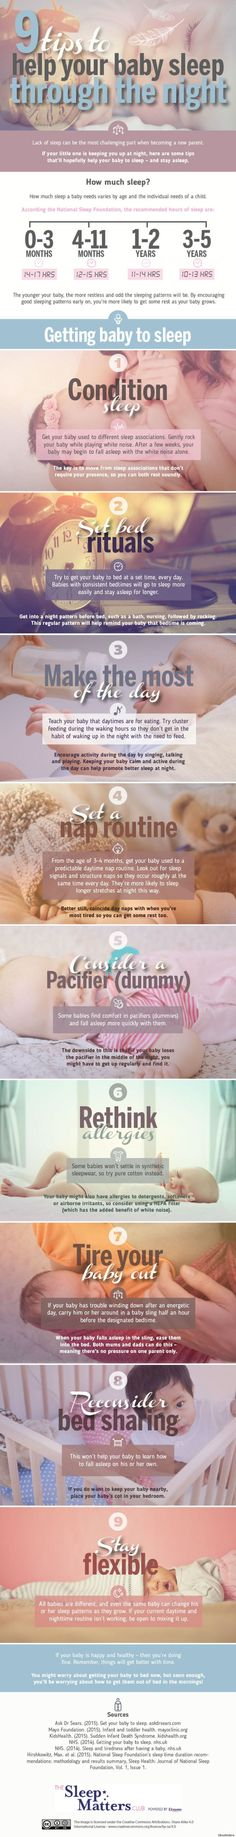 Babies are bundles of joy - except when they're wide awake at 3am and all you w...